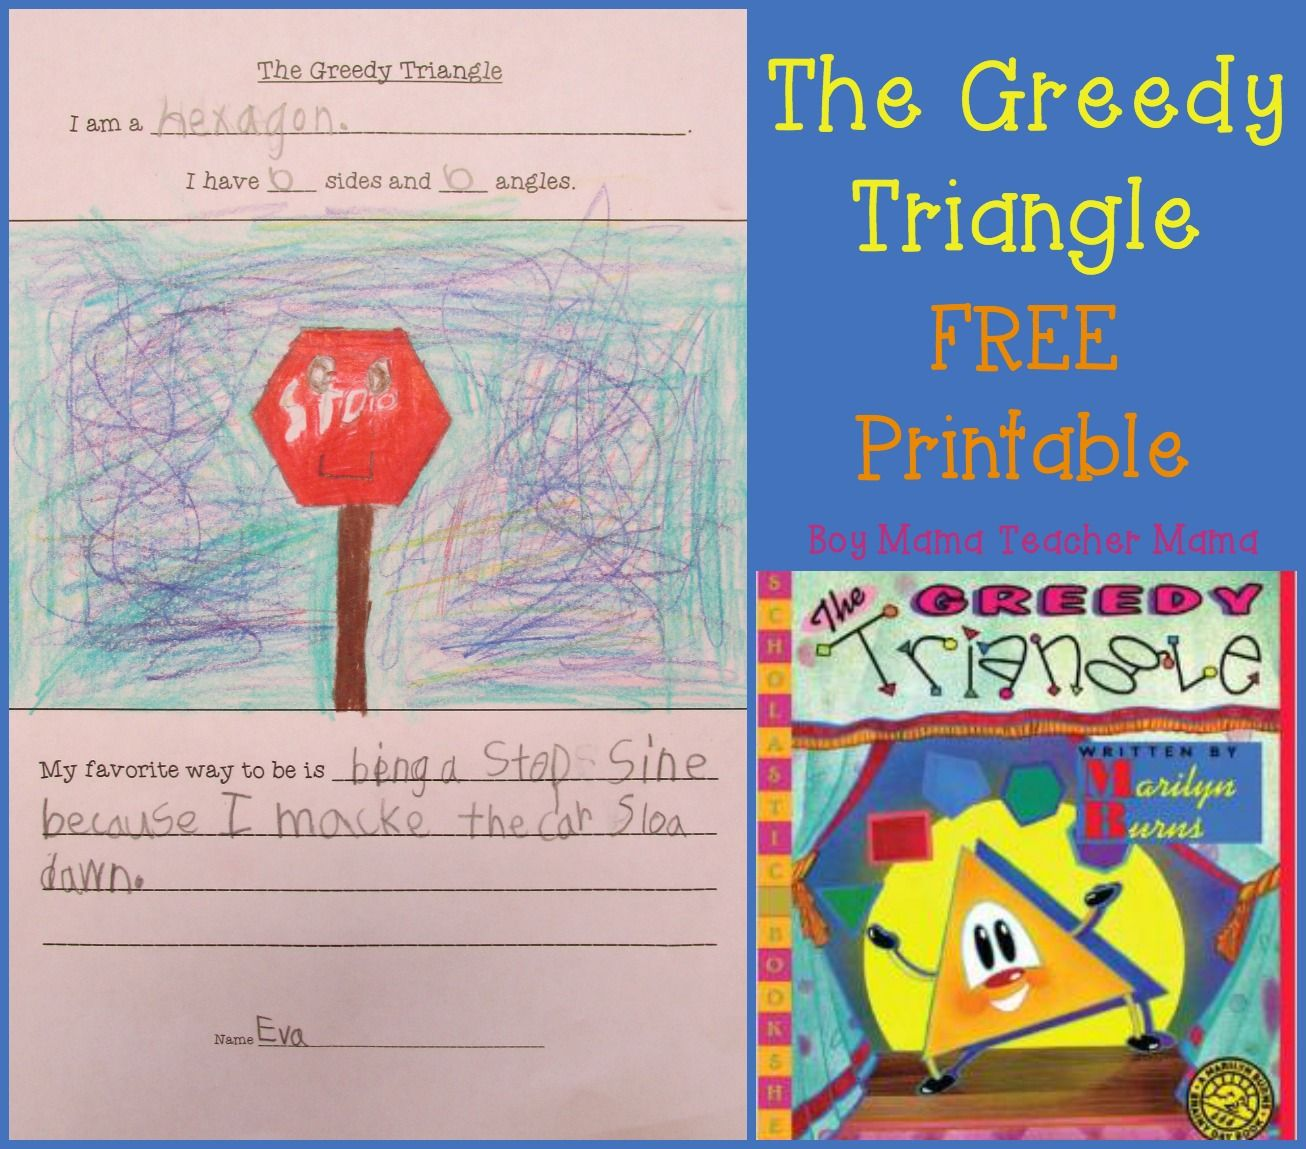 The Greedy Triangle Free Printable